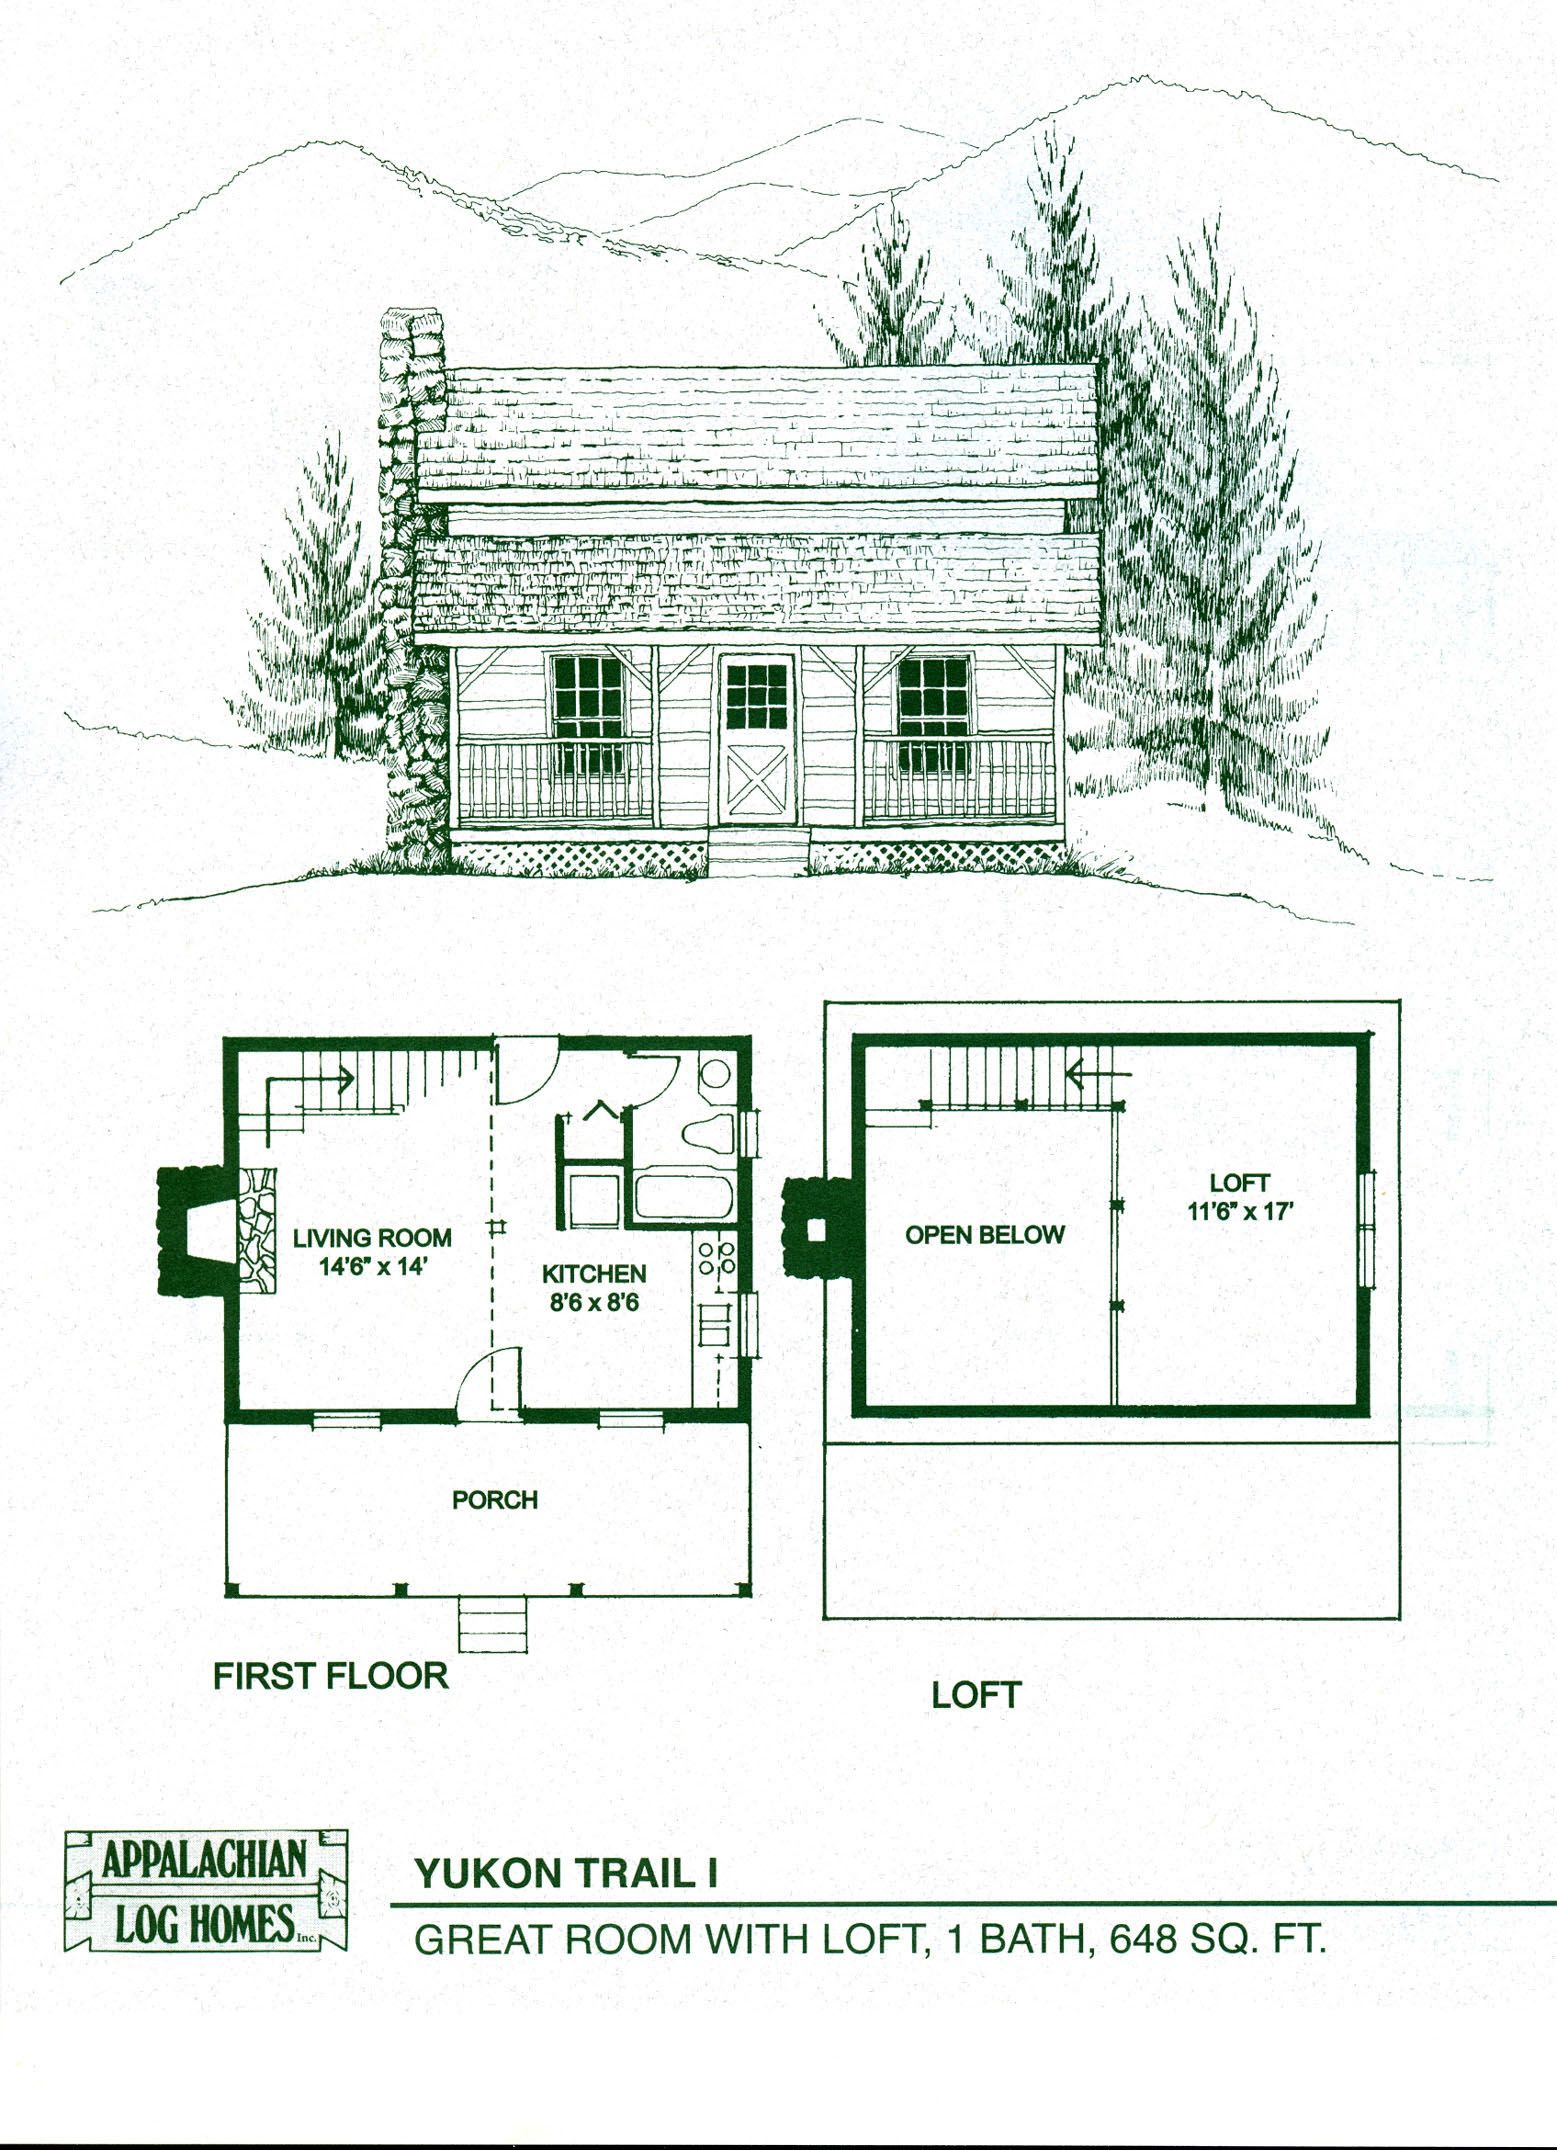 Log home floor plans log cabin kits appalachian log for Cottage blueprints and plans